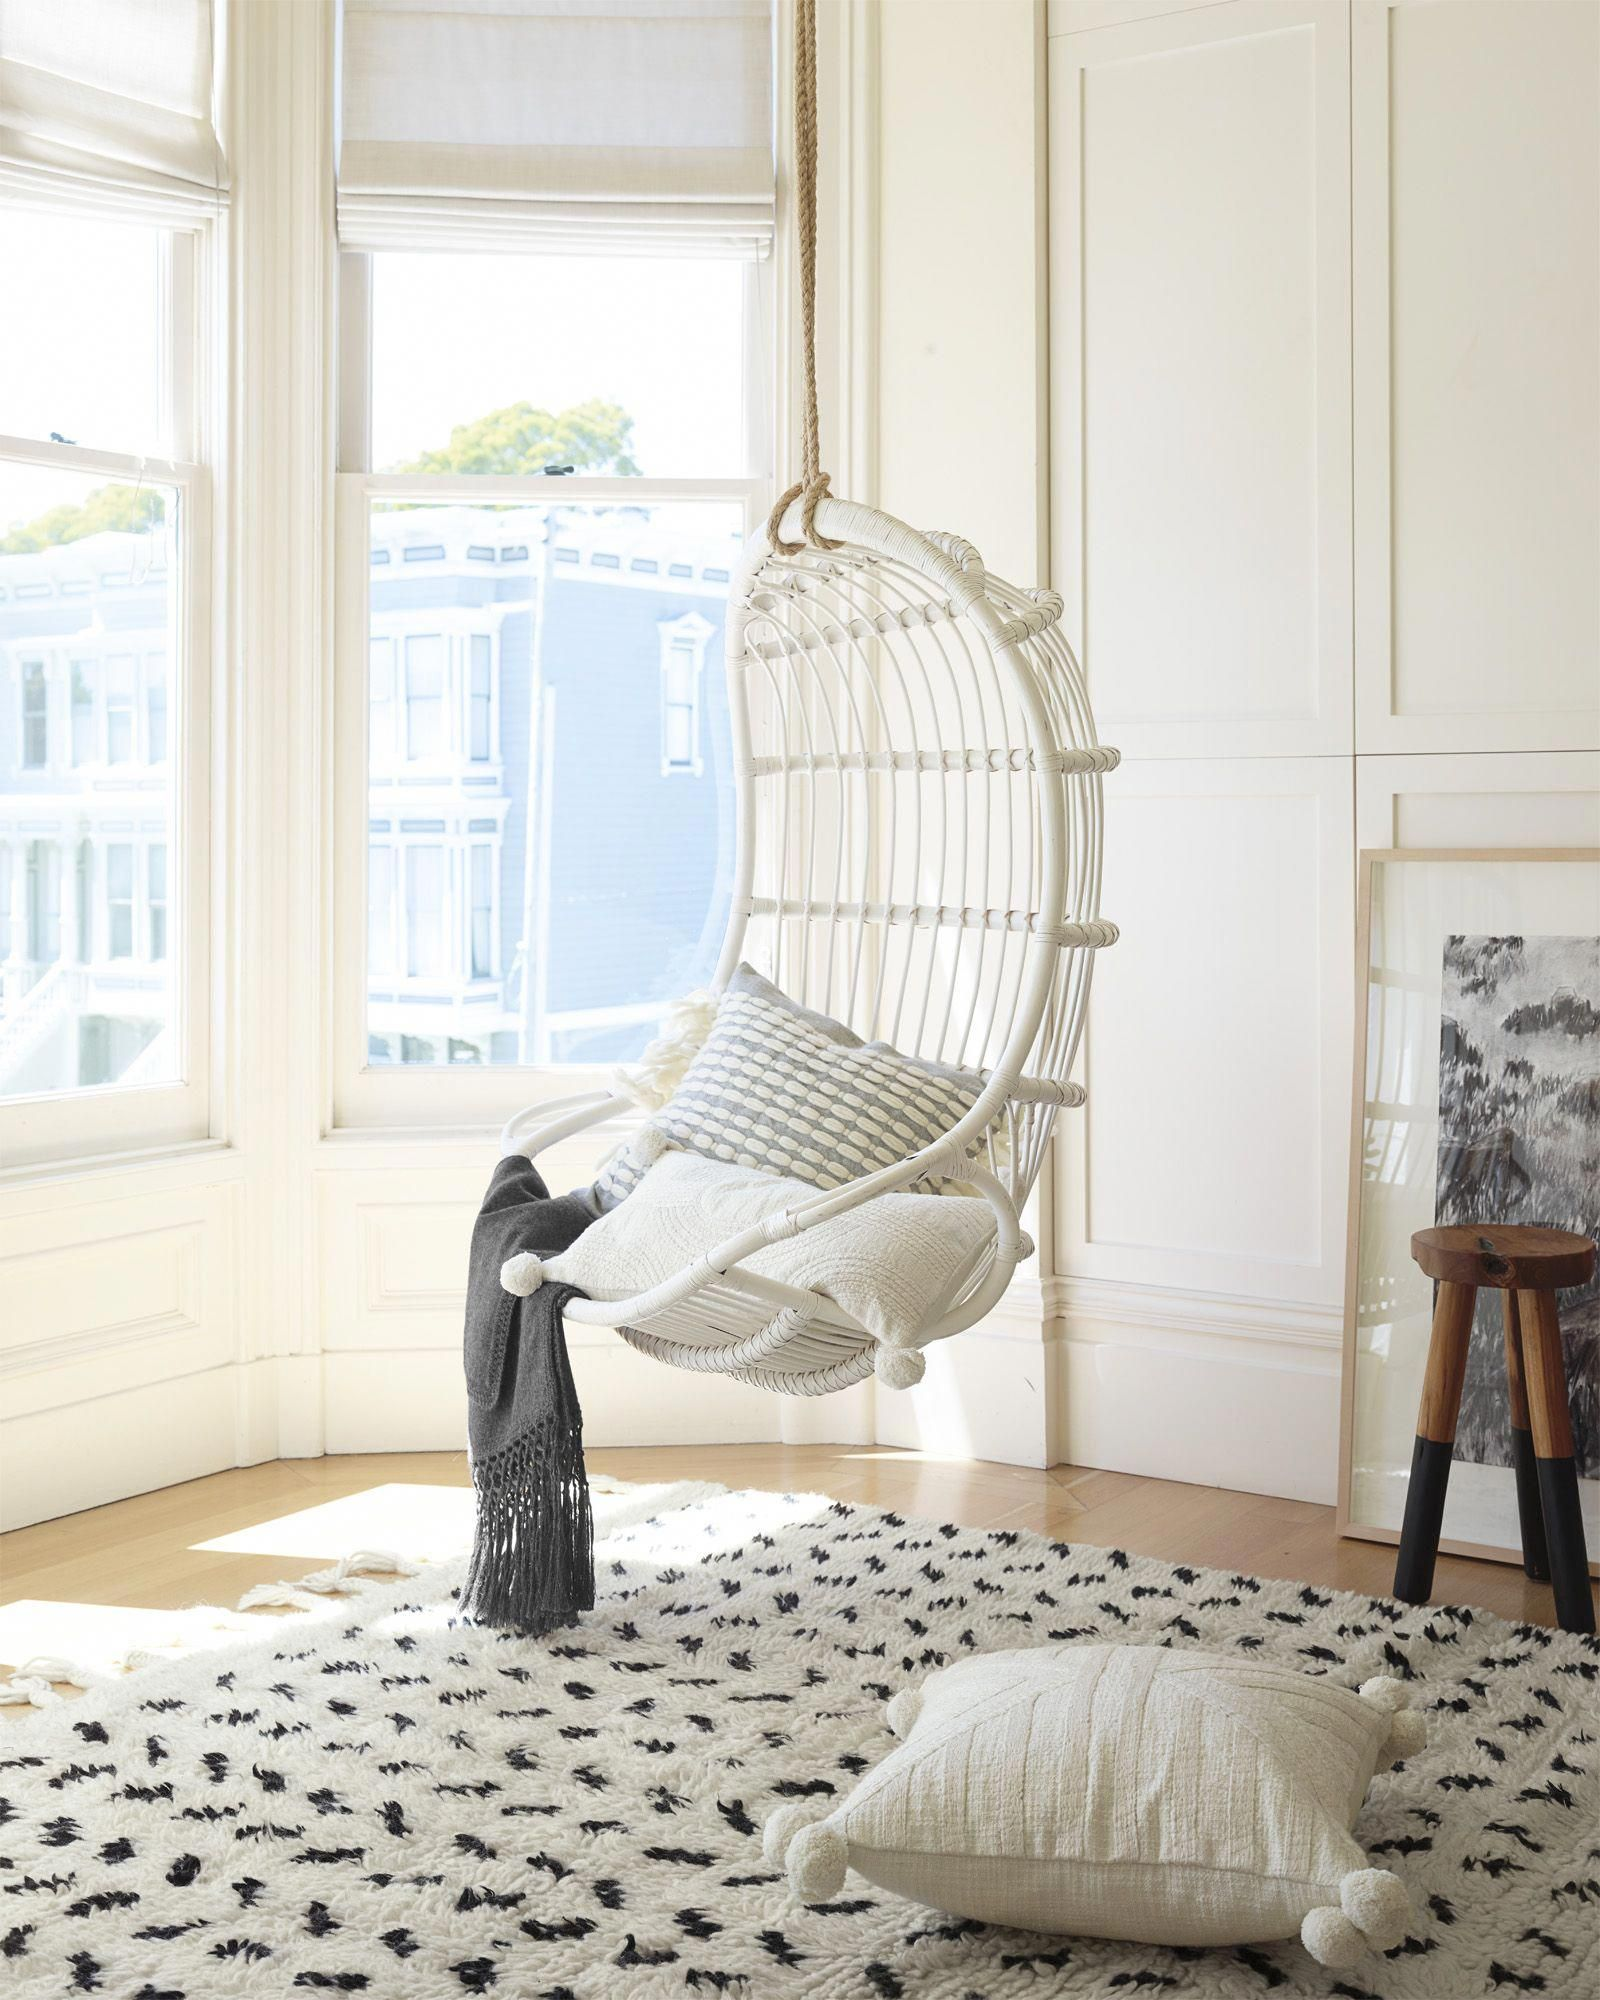 Hanging Rattan Chair Hanging chair, Swinging chair